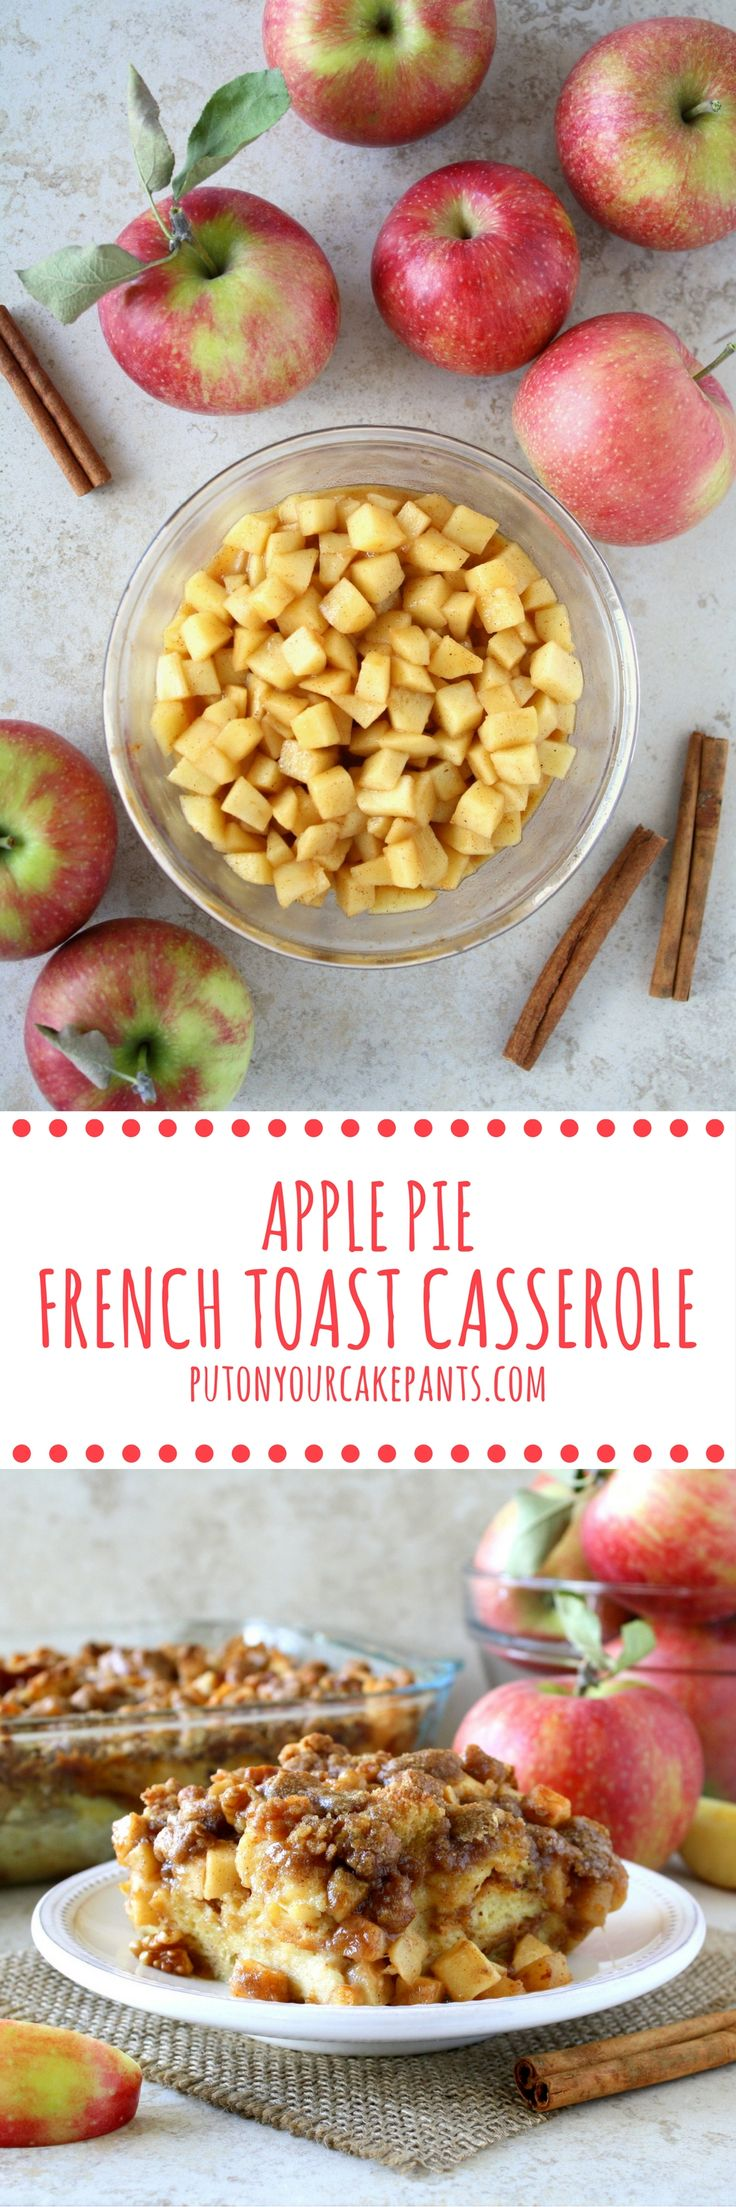 Apple pie French toast casserole makes for an impressive and decadent fall-time brunch. It's a great way to treat your guests if you have company!